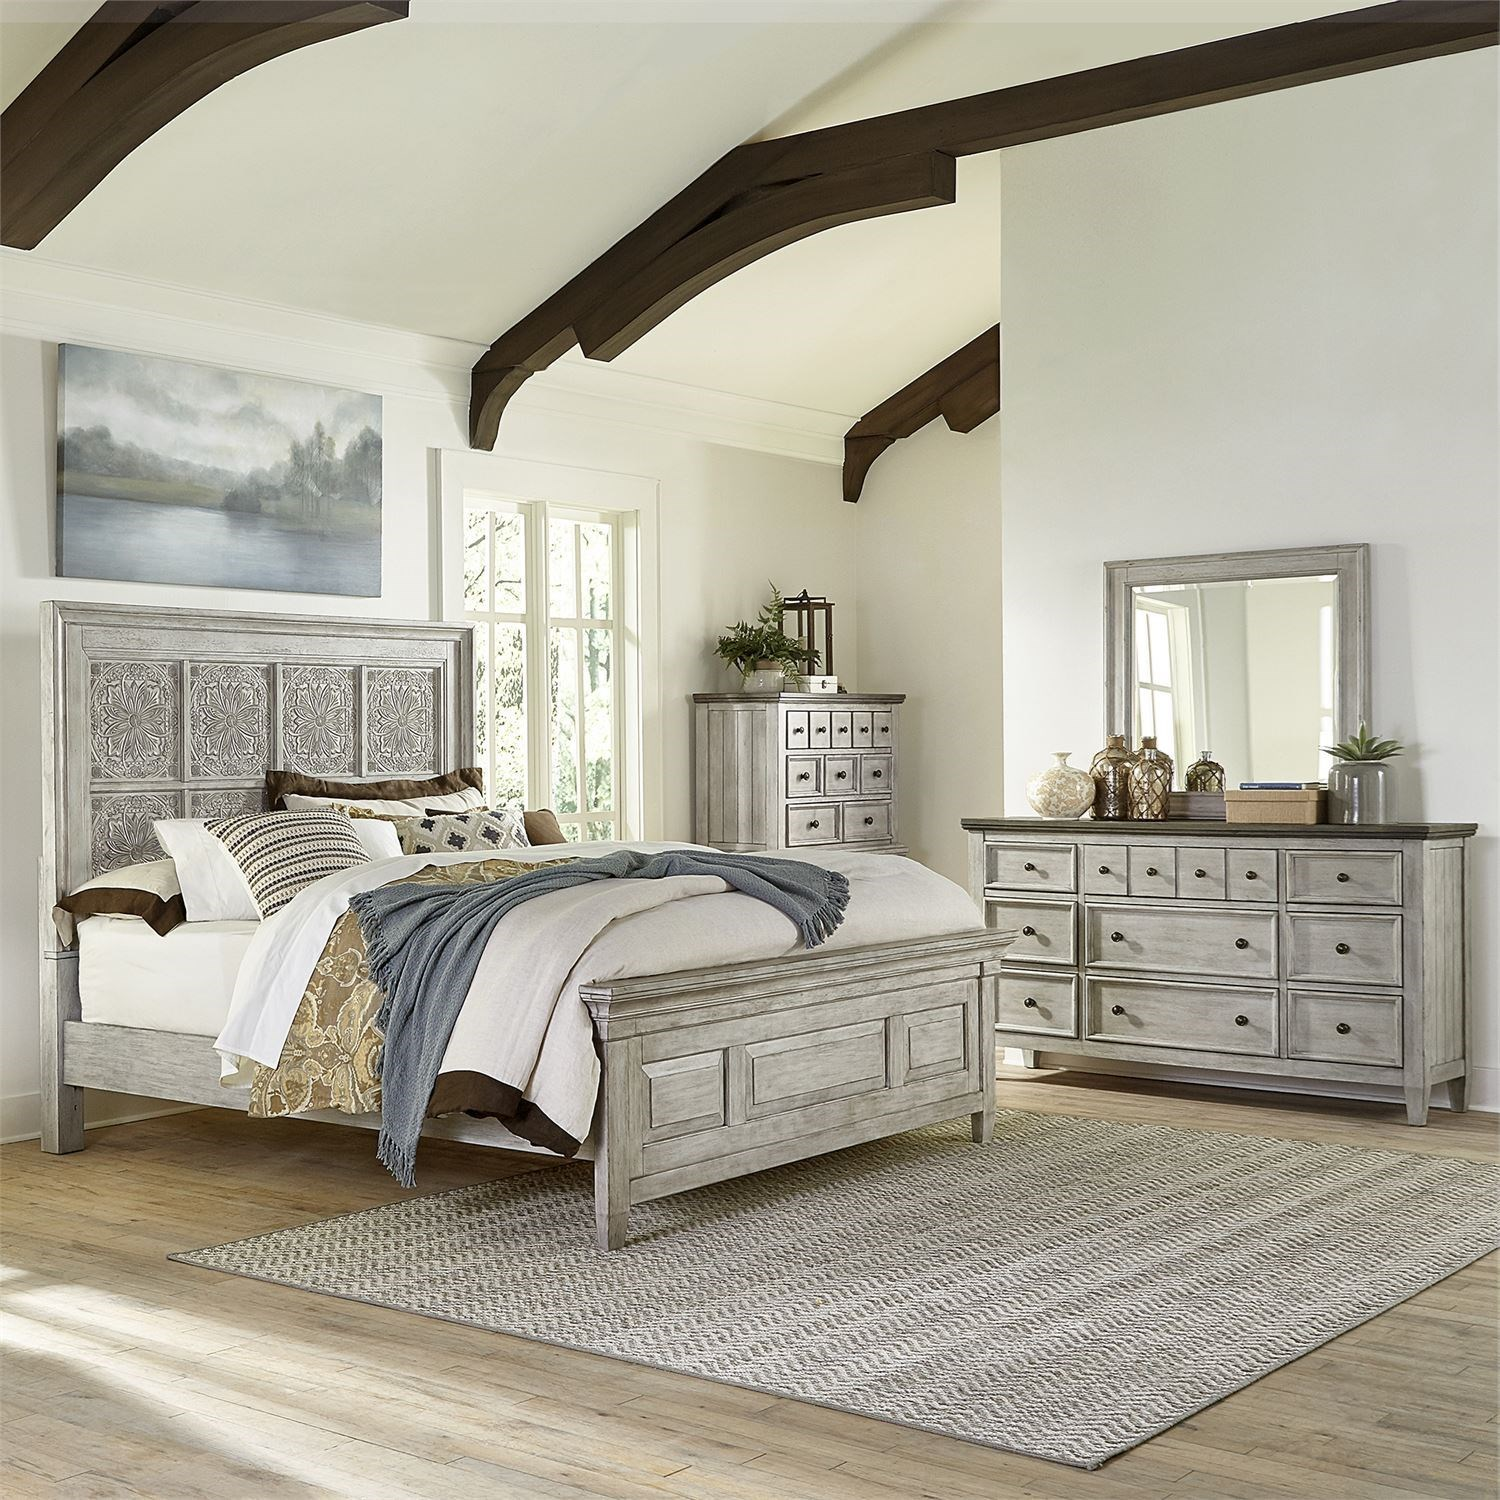 Heartland Queen Bedroom Group by Freedom Furniture at Ruby Gordon Home